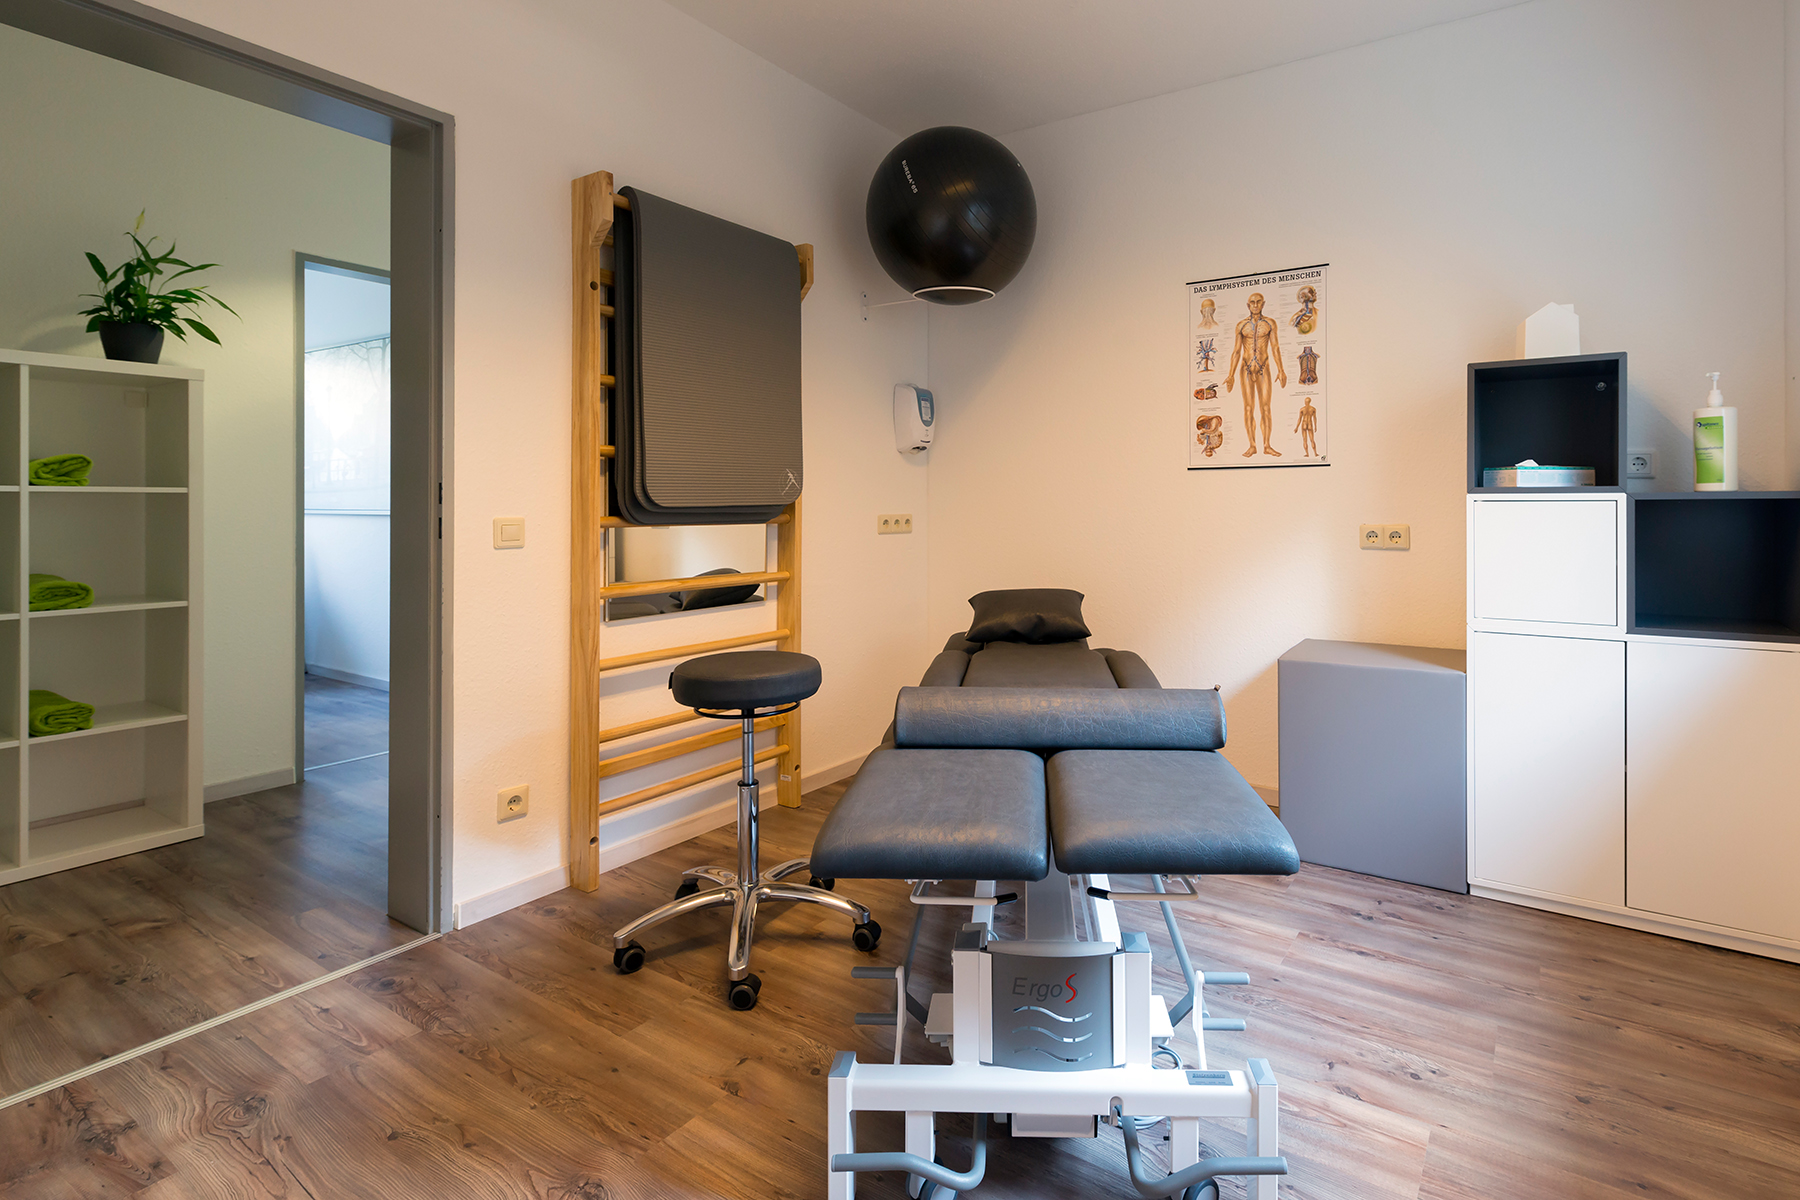 Therapieraum - Physiotherapie in Hamm Uentrop